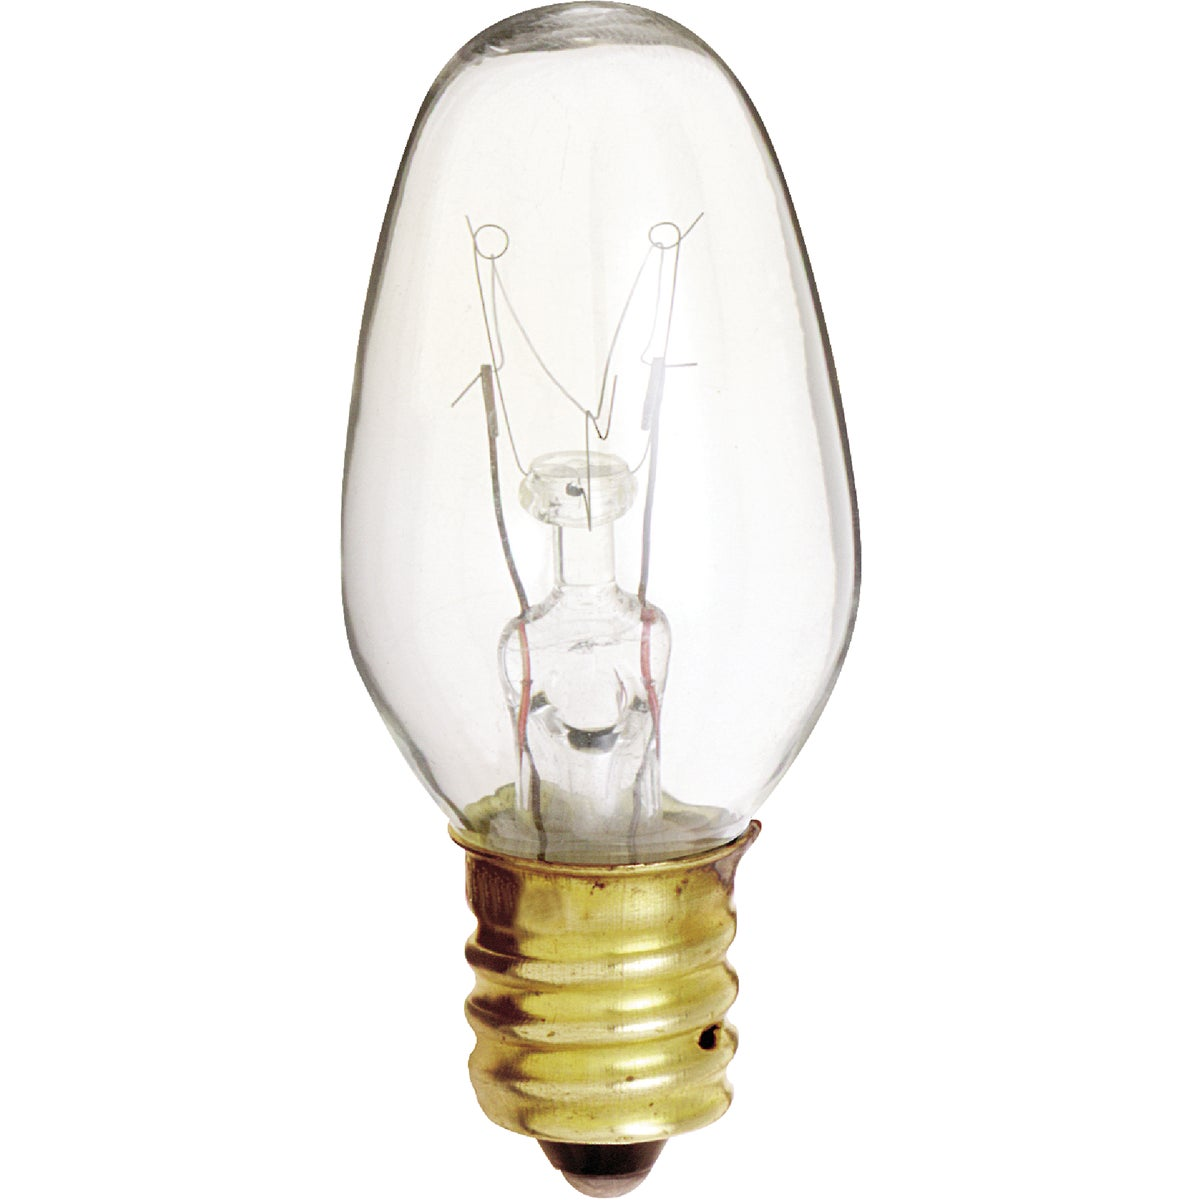 4W CLR NIGHT LIGHT BULB - 43050 by G E Lighting